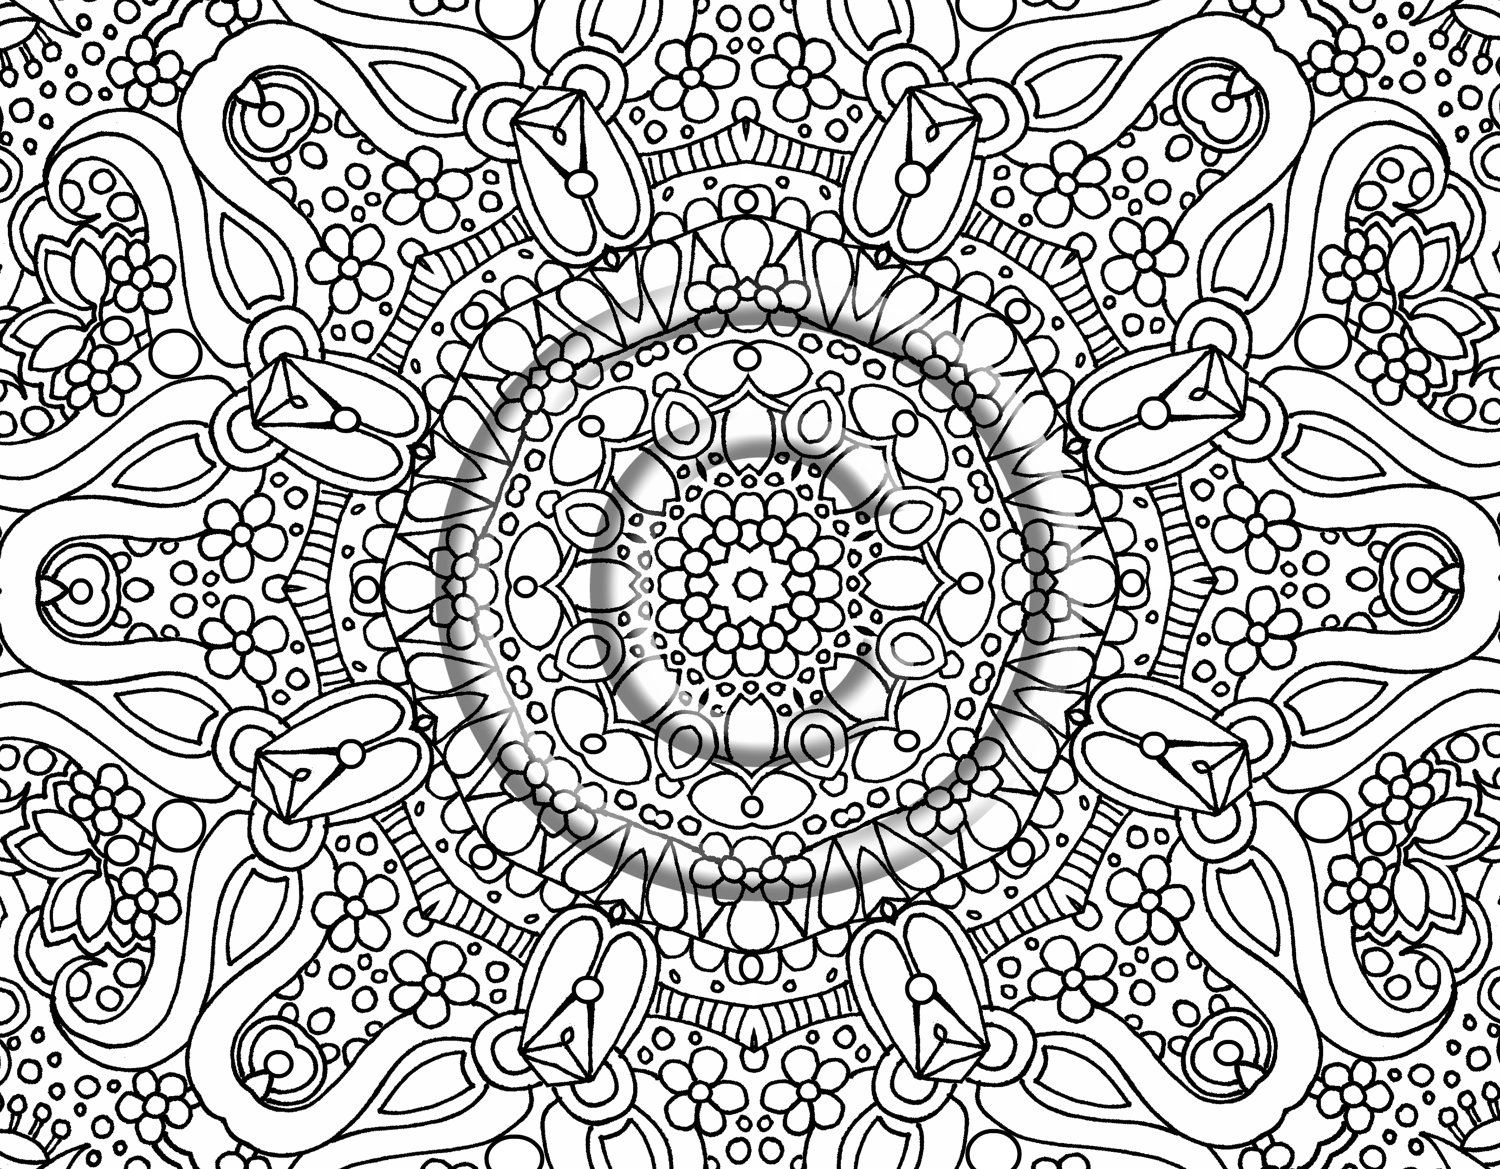 printable adults coloring pages free - photo#12